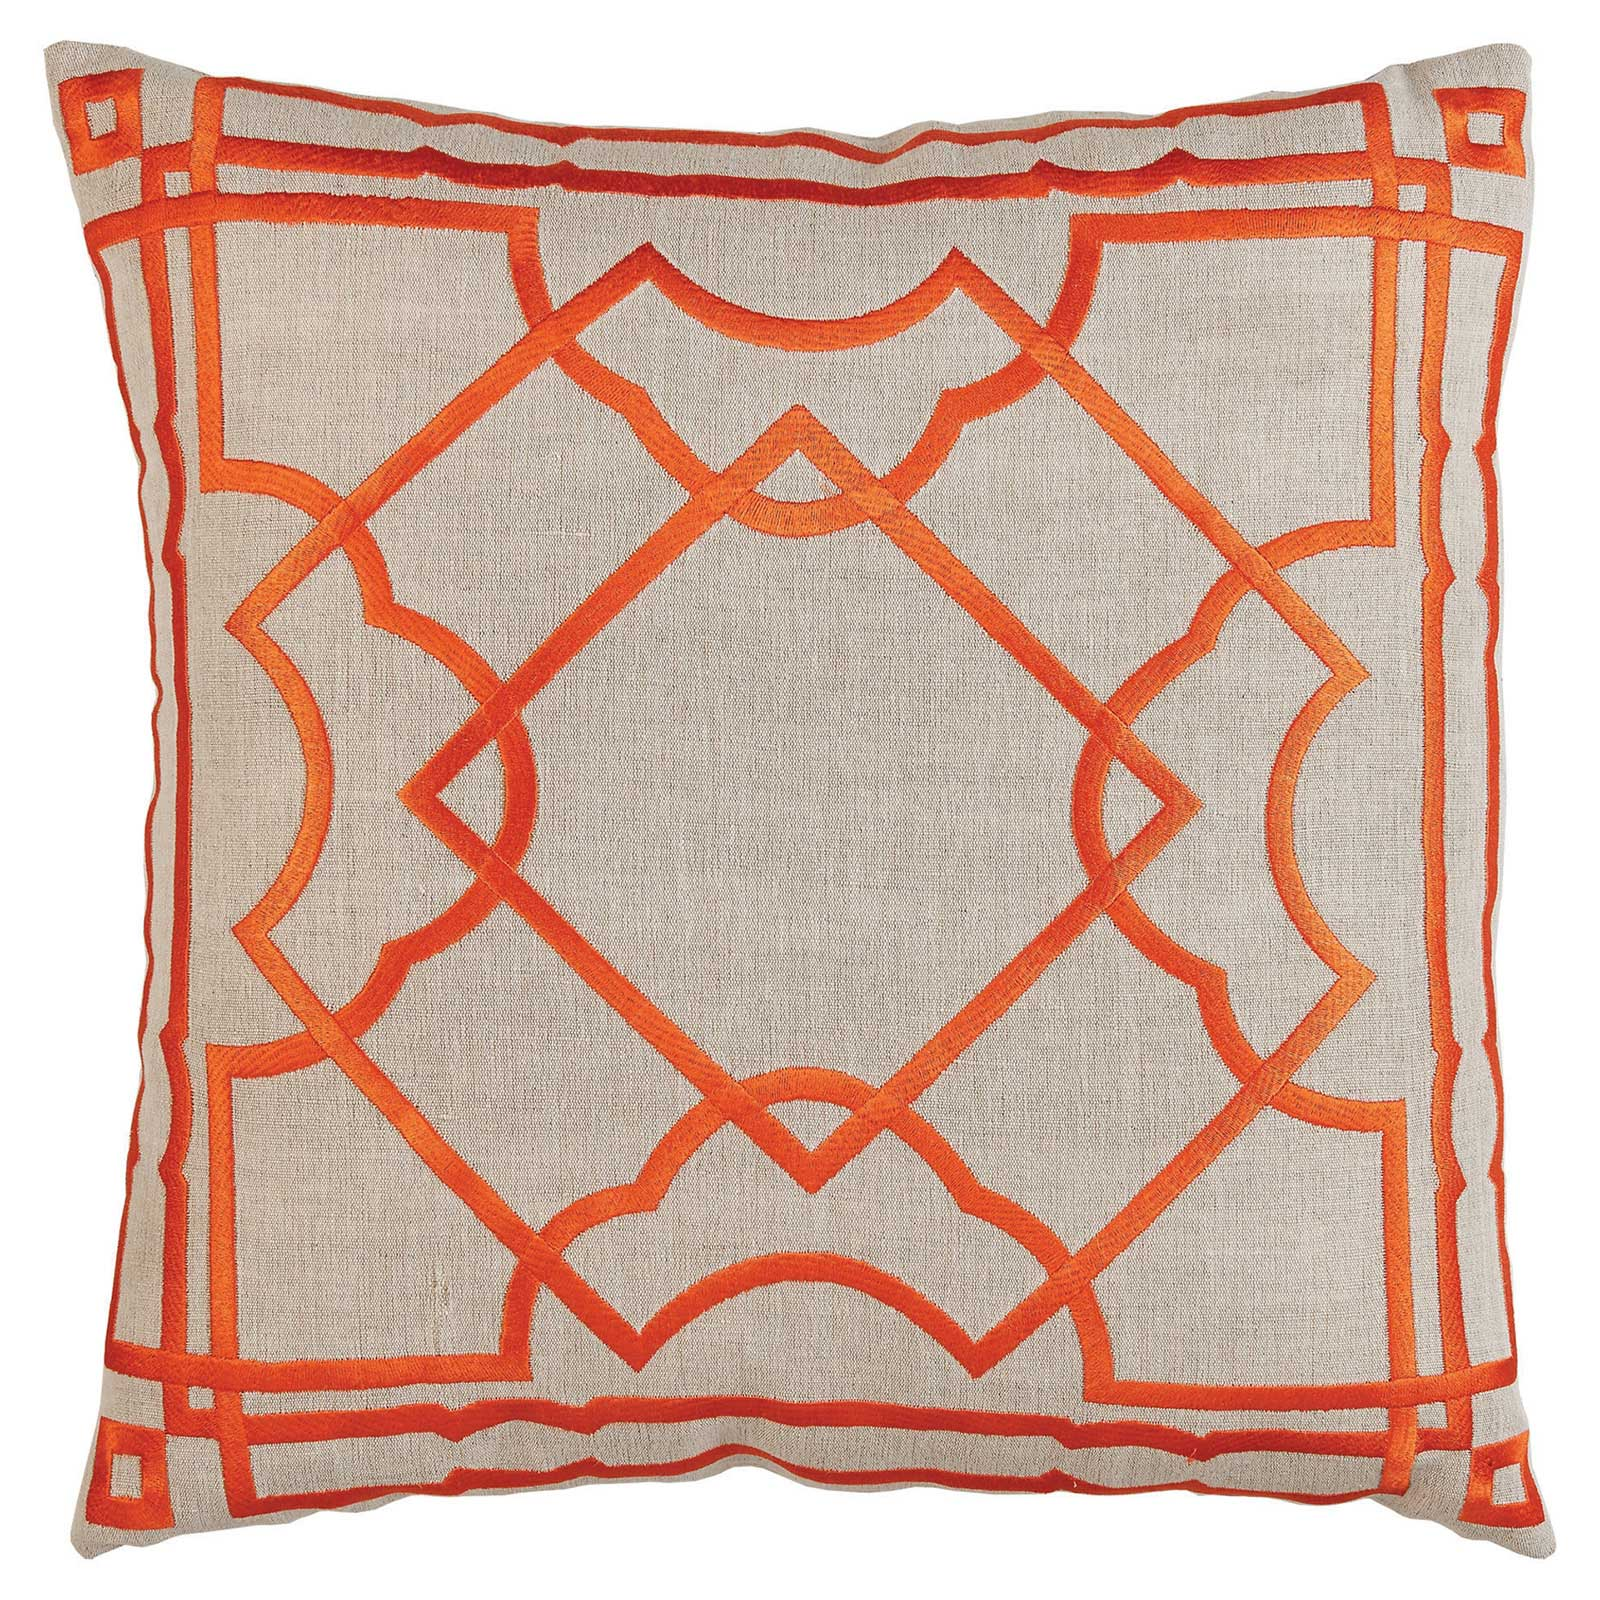 Cugat Modern Deco Orange Embroidered Beige Pillow - 20x20